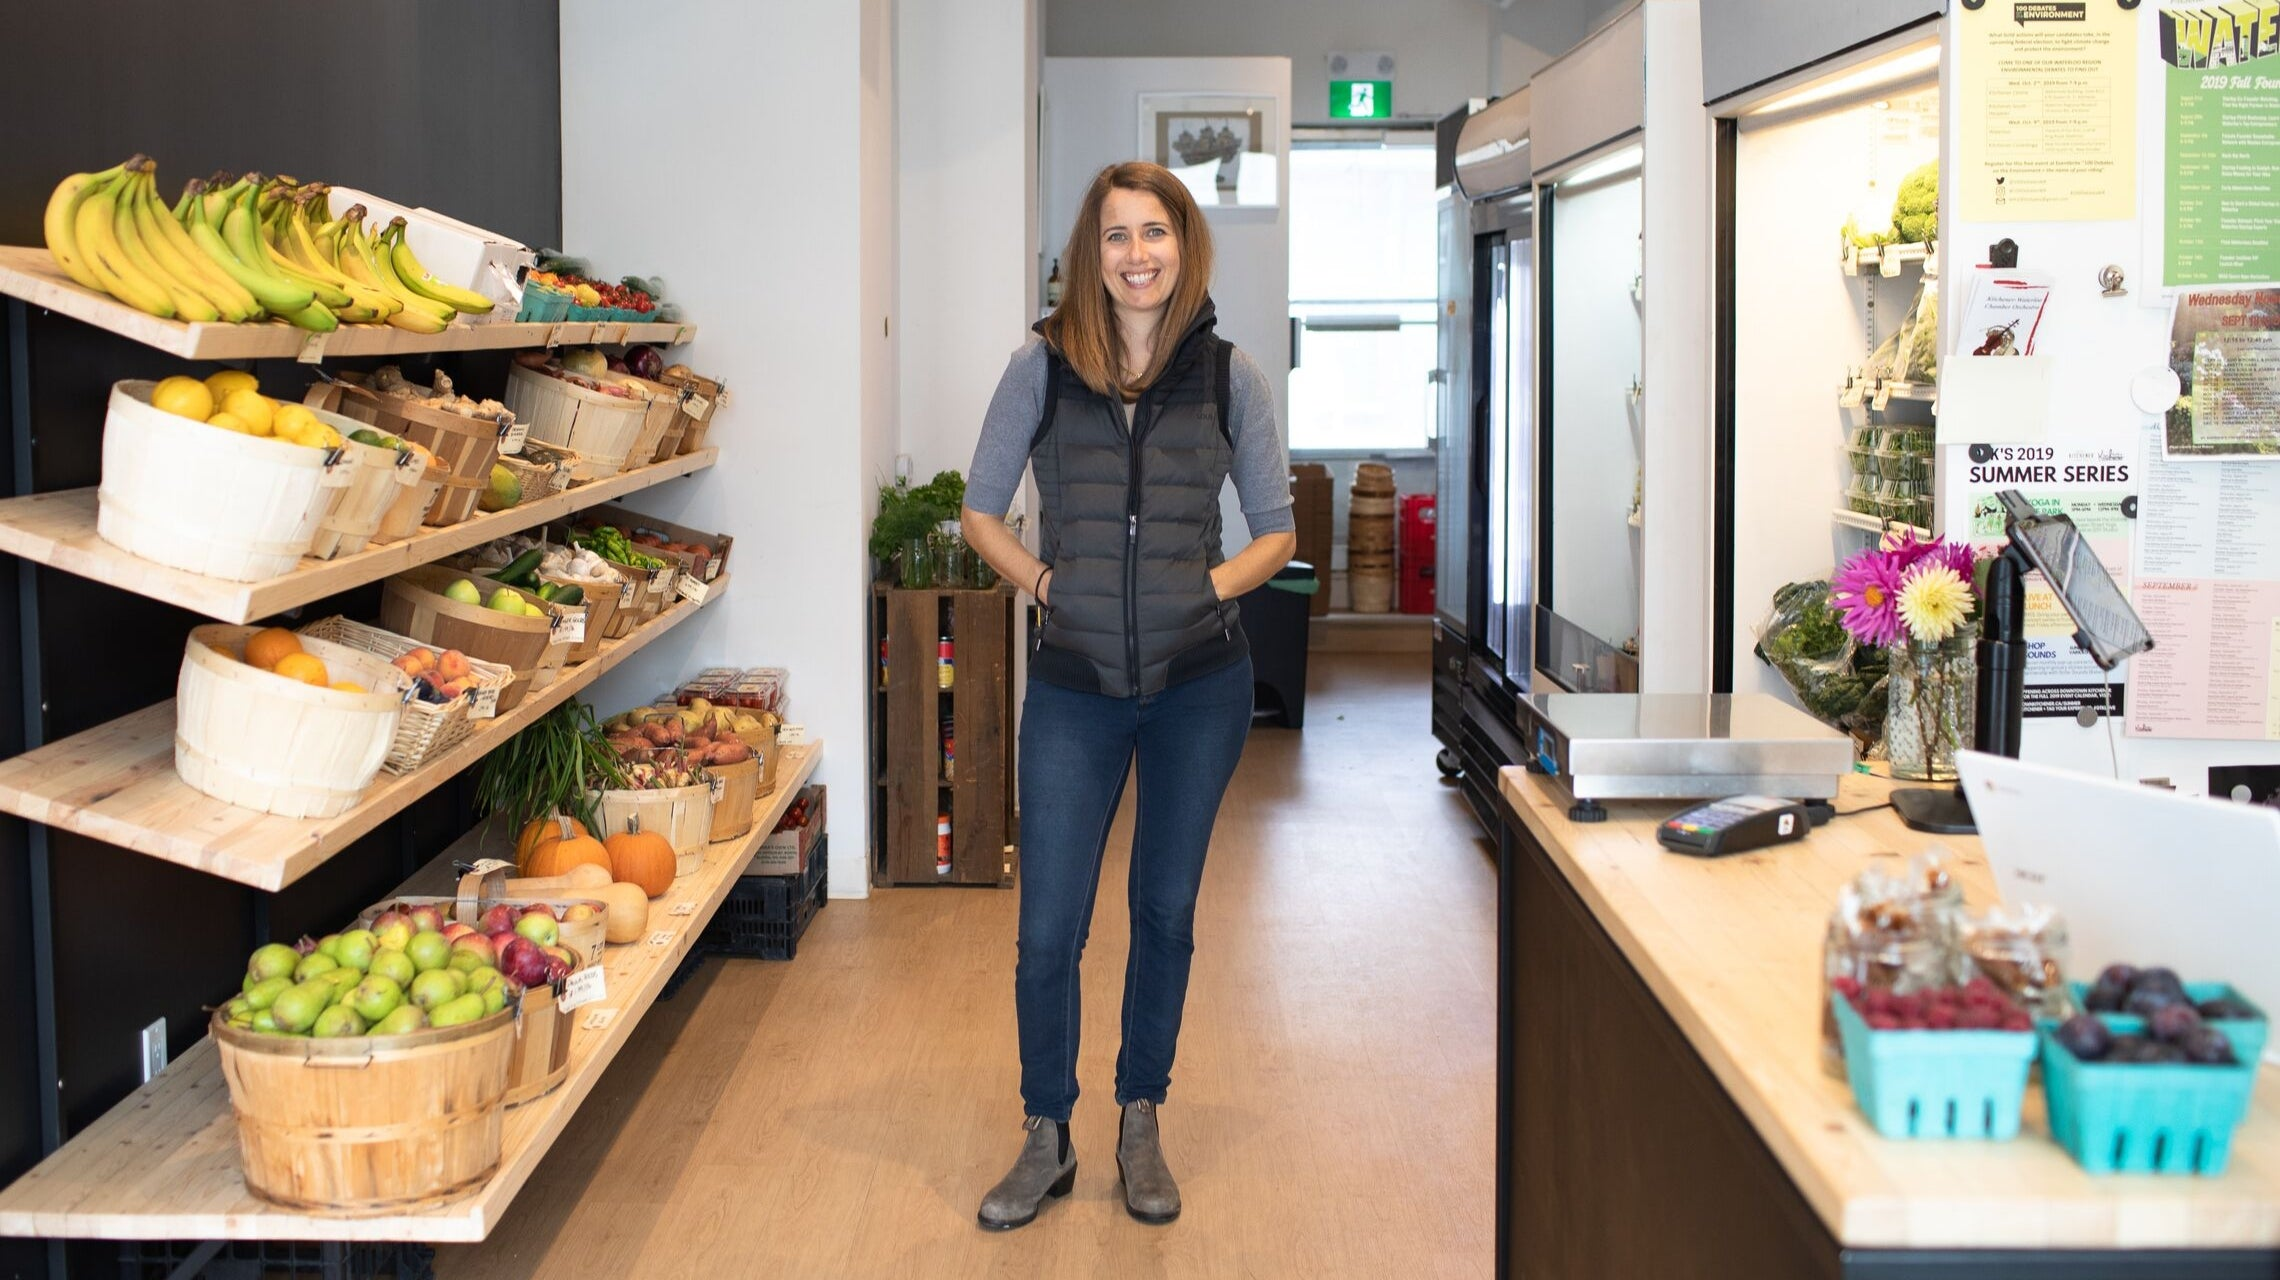 Jordan Dolson, founder of Legacy Greens Grocery Store in Downtown Kitchener, Ontario